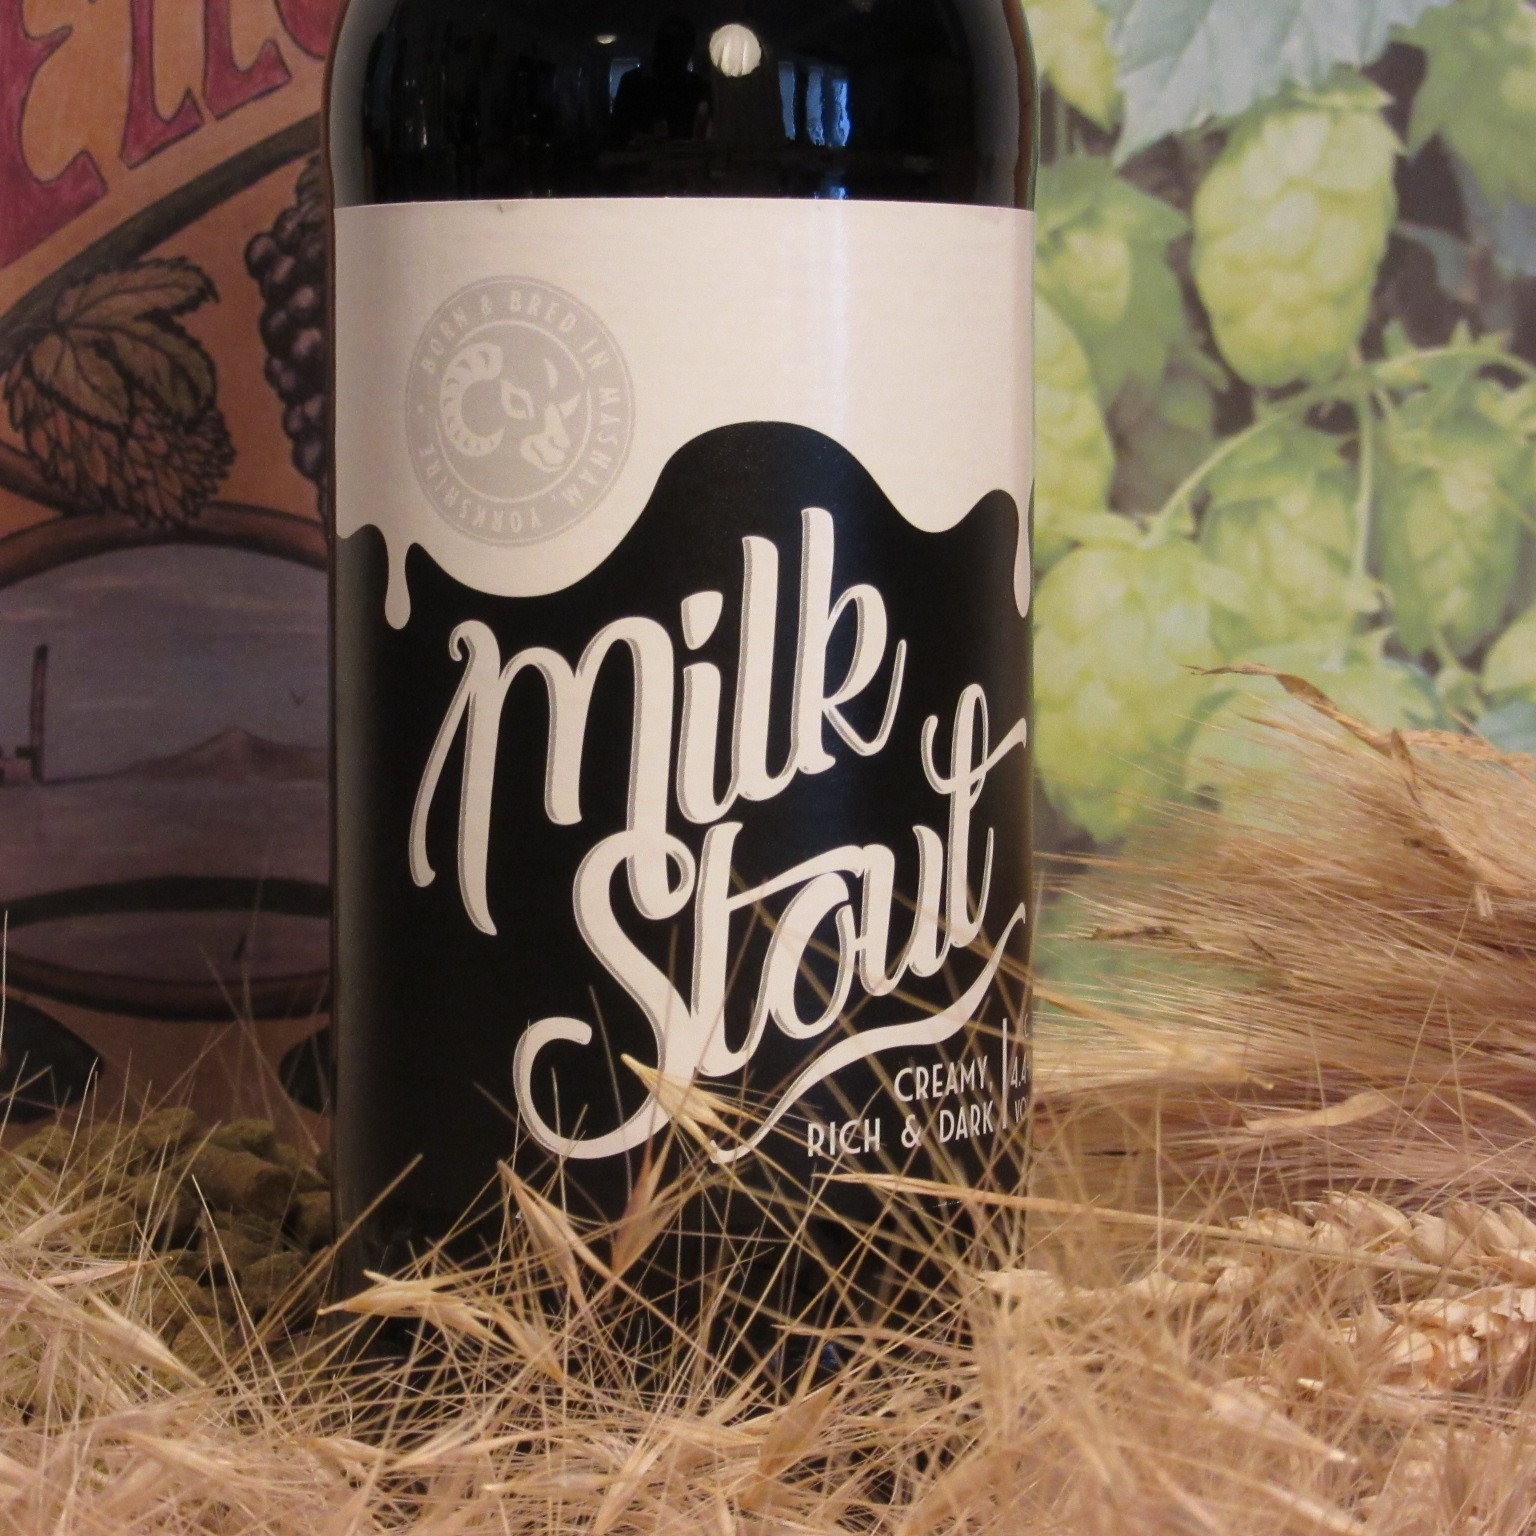 Black Sheep Milk Stout